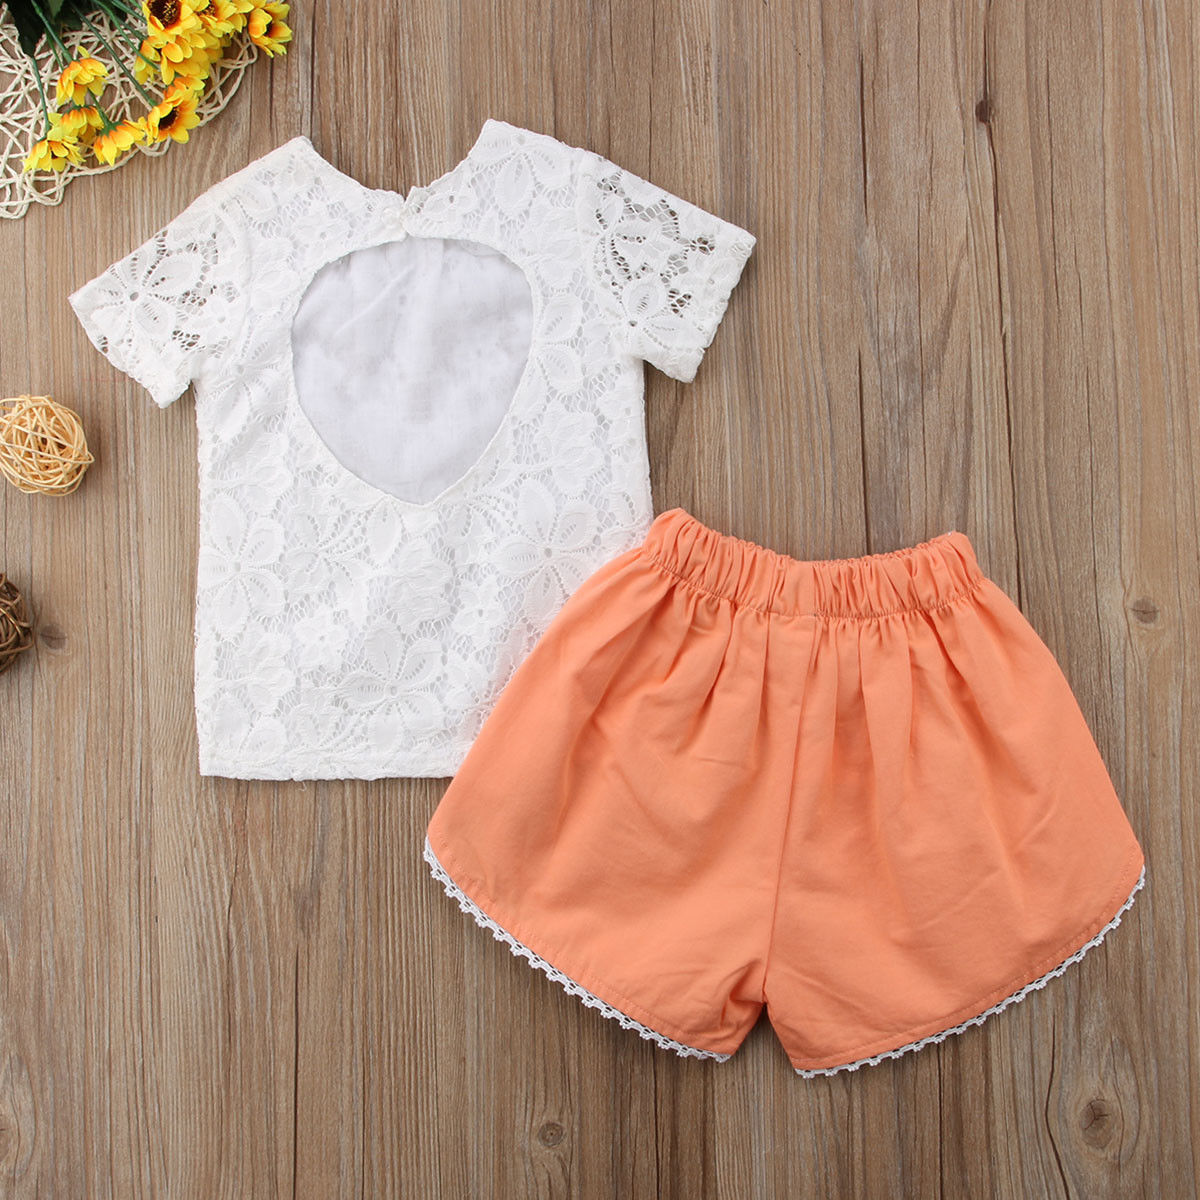 2019 Newborn Toddler Infant Baby Girl Clothes Foral Tops+Bowknot Pants Outfits Sets2019 Newborn Toddler Infant Baby Girl Clothes Foral Tops+Bowknot Pants Outfits Sets